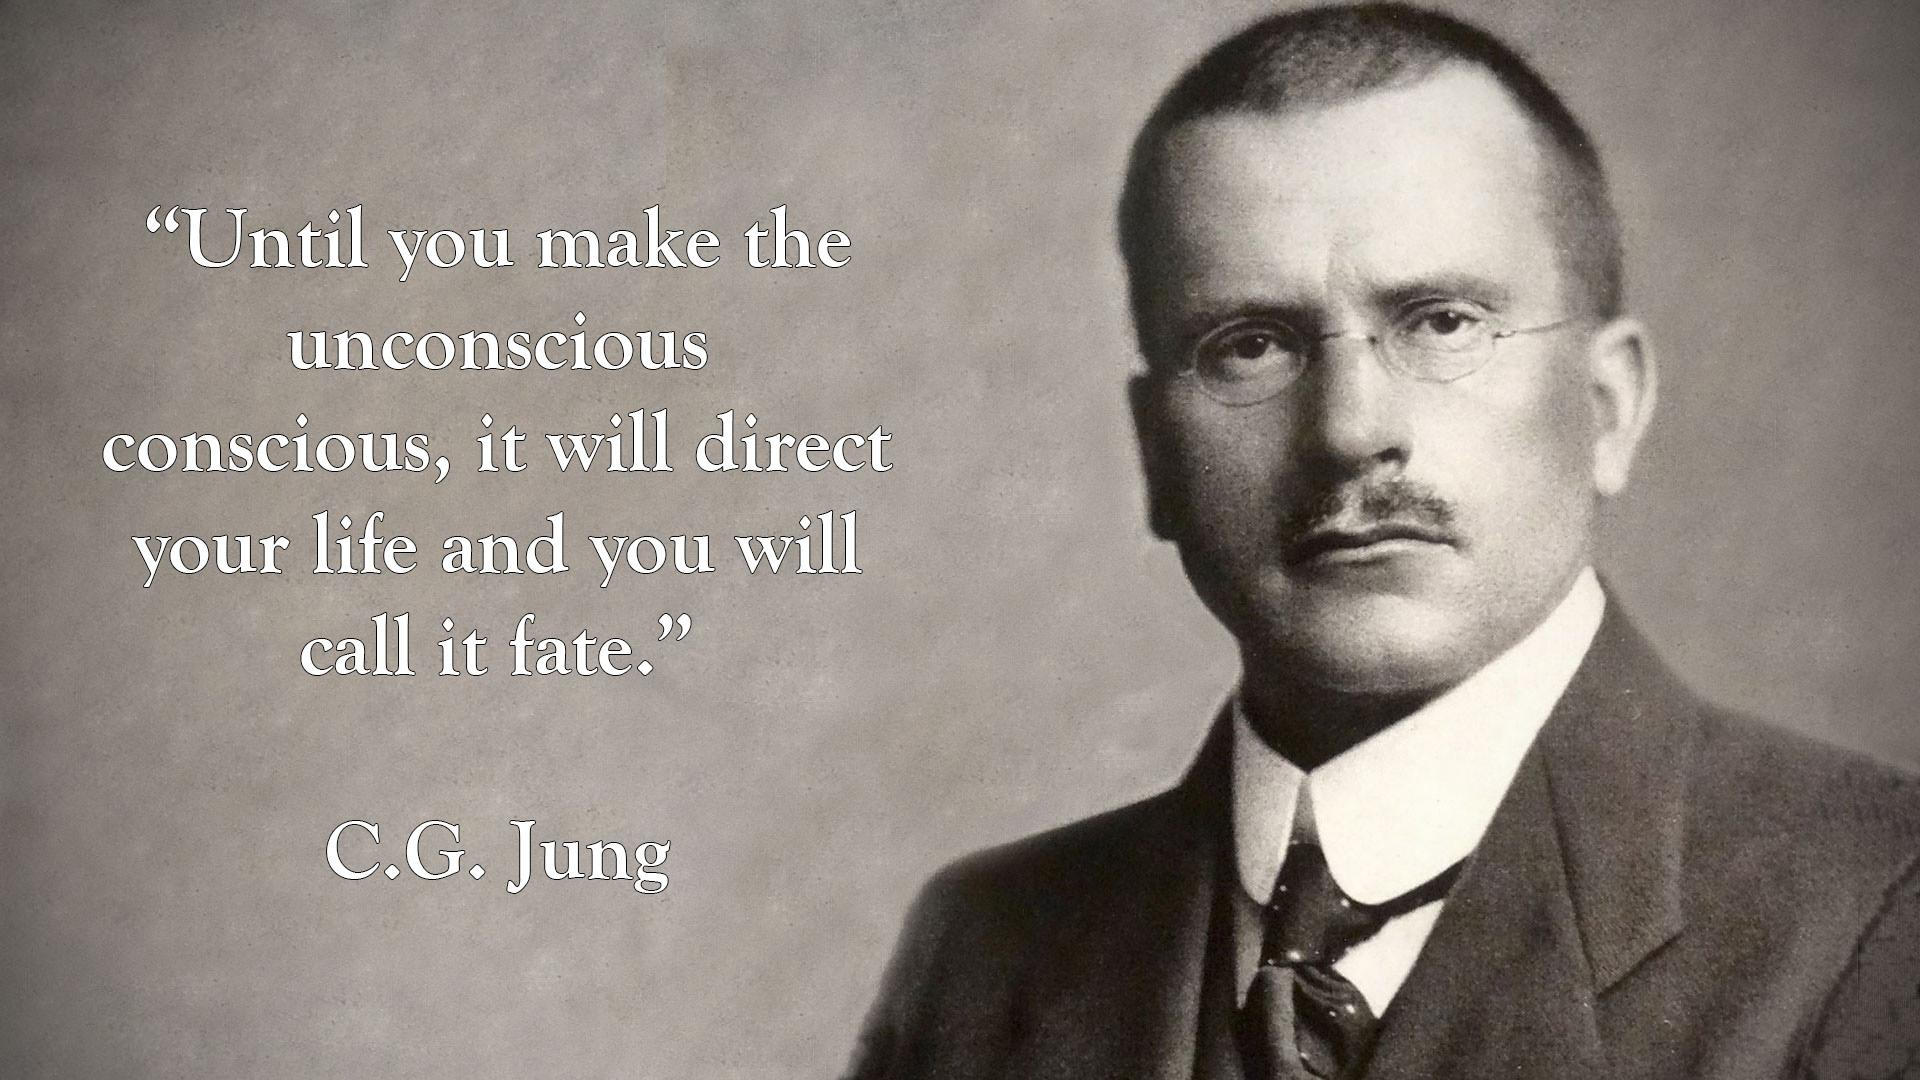 """Until you make the unconscious conscious, it will direct your life and you will call it fate."" ― C.G. Jung [1920 × 1080]"